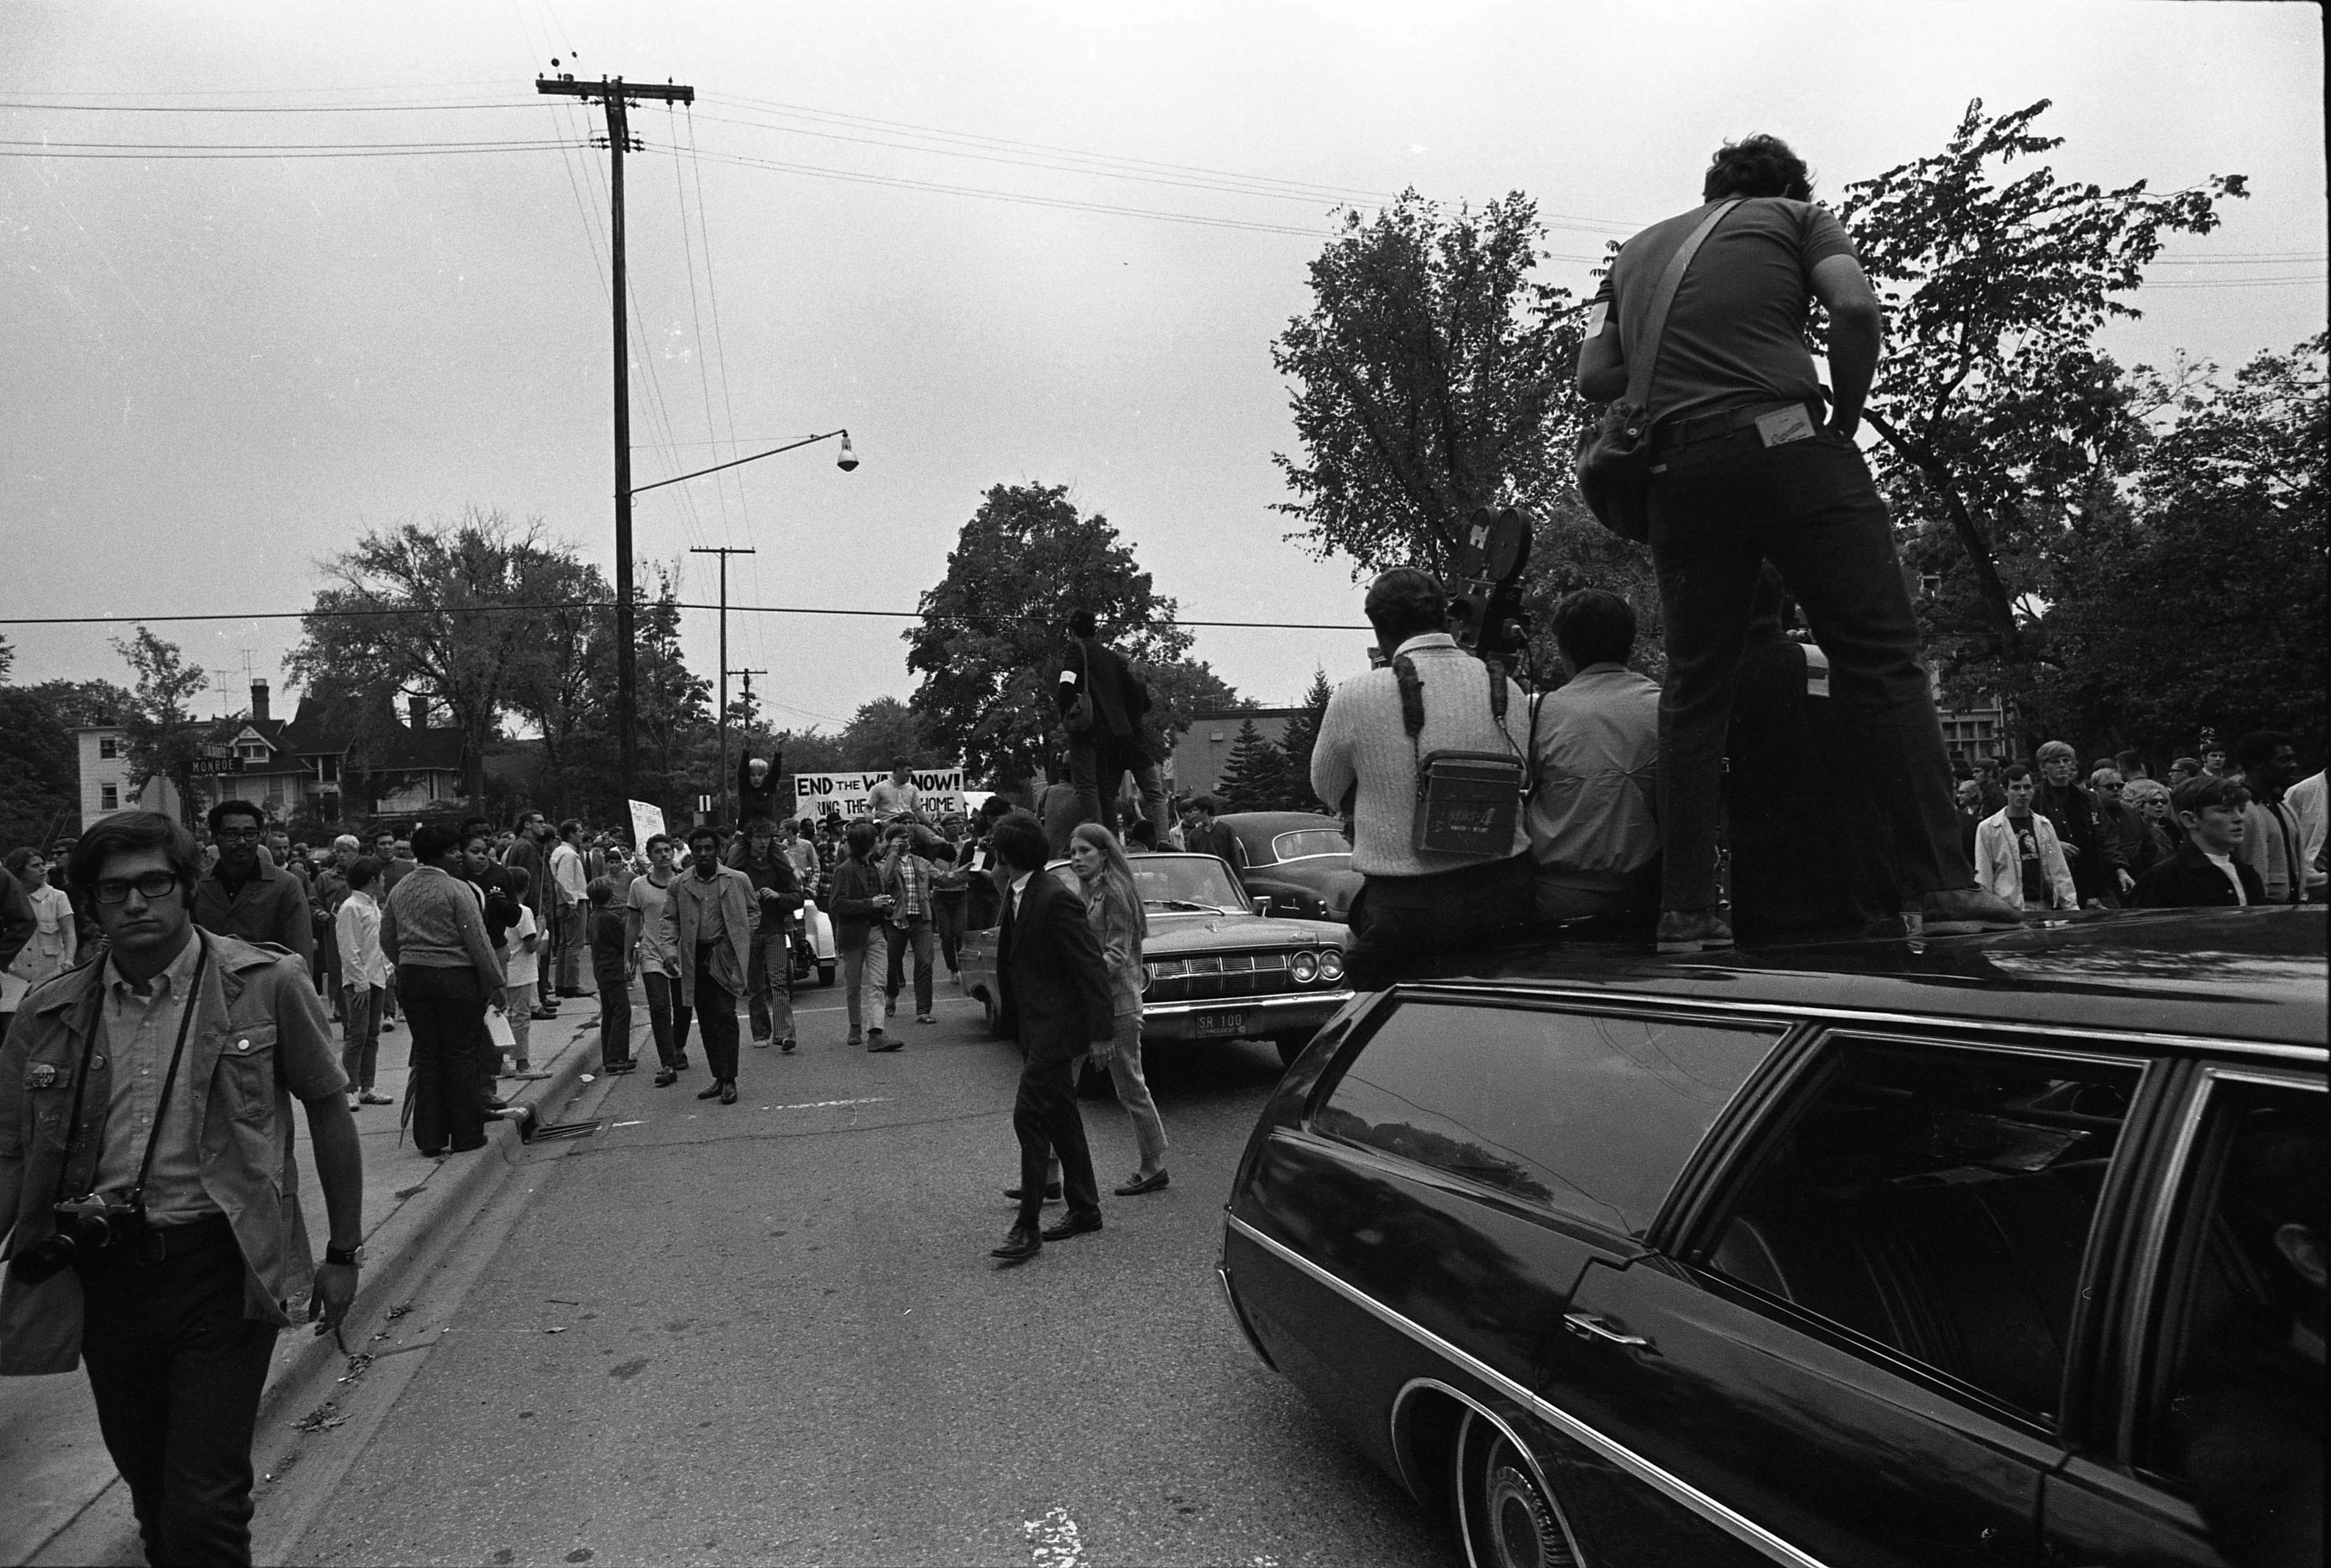 March For Peace On Packard, September 20, 1969 image